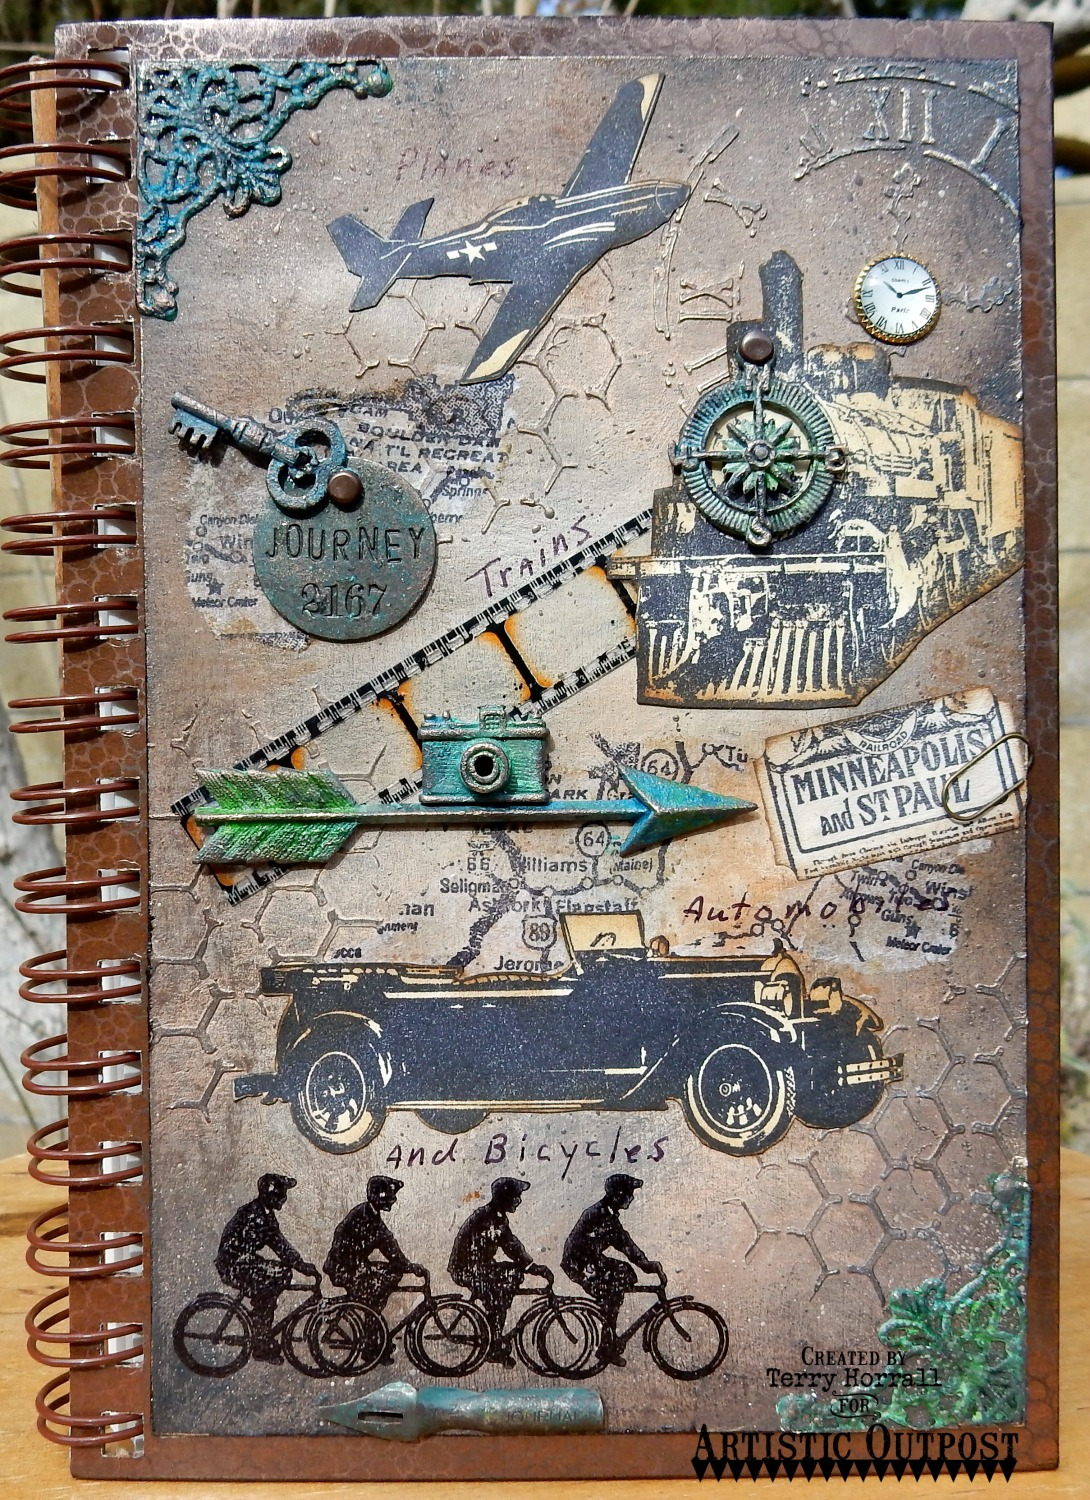 Stamps - Artistic Outpost SteamPunk, Hat's Off, Route 66, Industrial Backgrounds, Gatsby